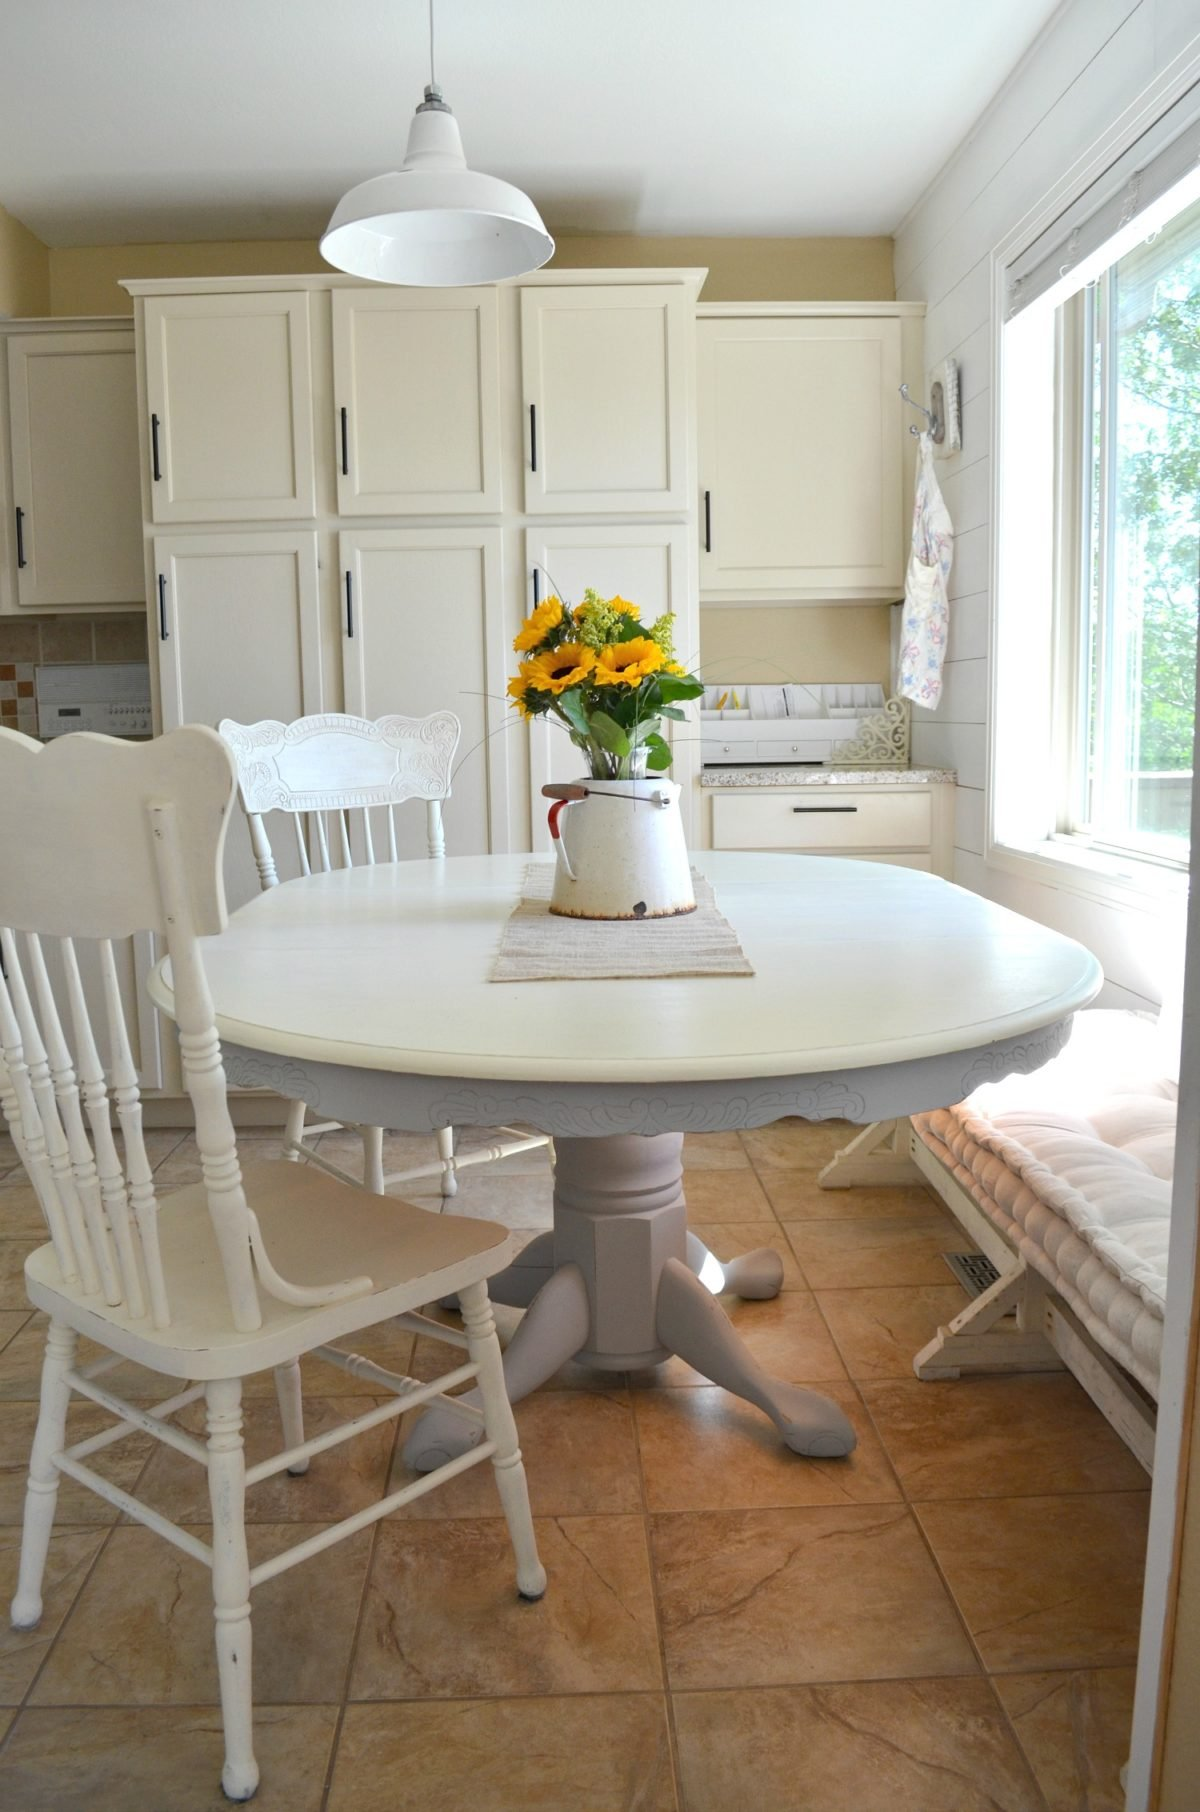 DIY Projects - Chalk Paint Dining Table Makeover | Sarah Joy ...